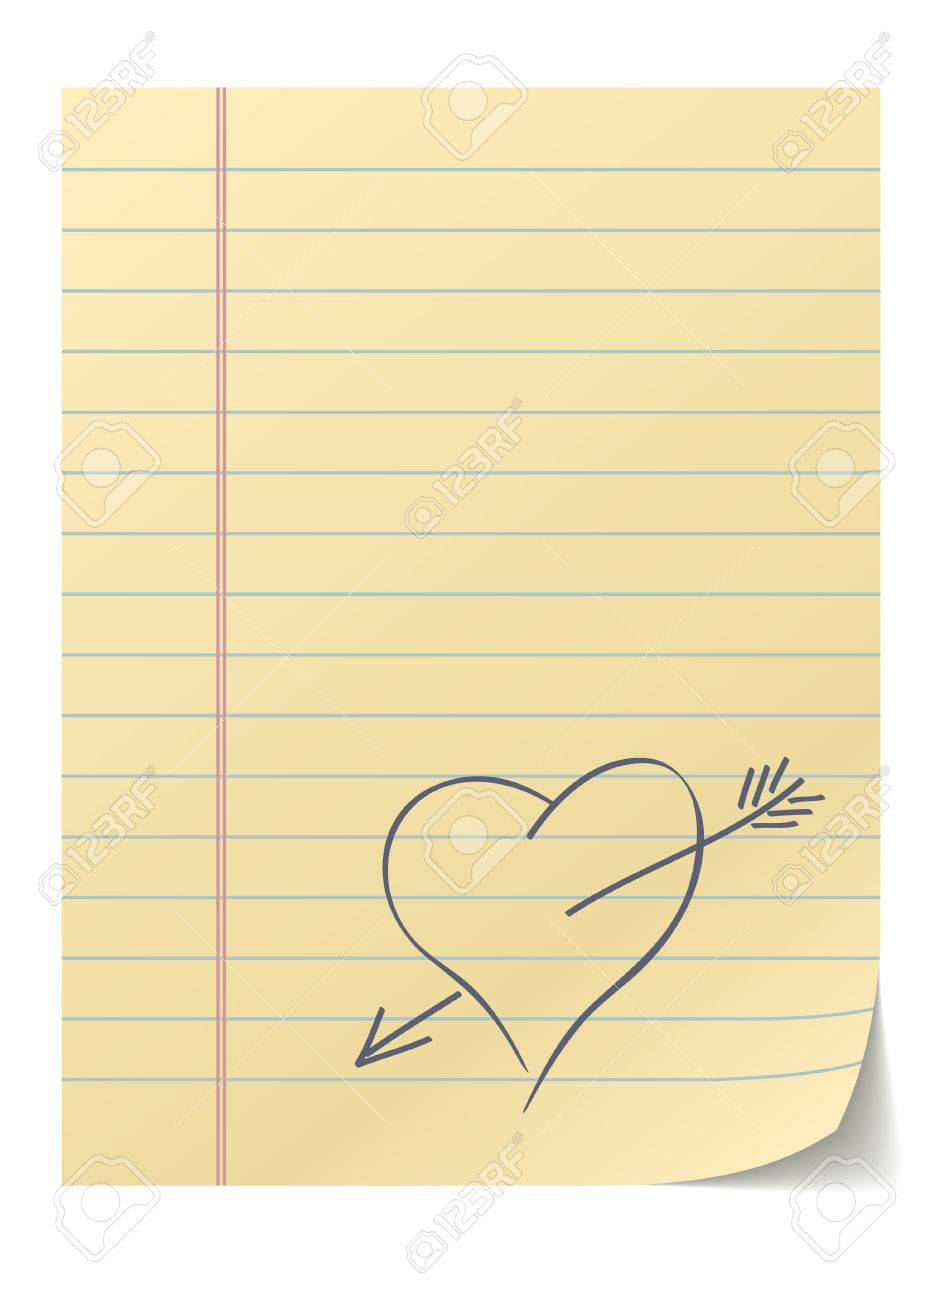 Blank Lined Page With Hand Drawn Heart – Love Message. Royalty Free ...